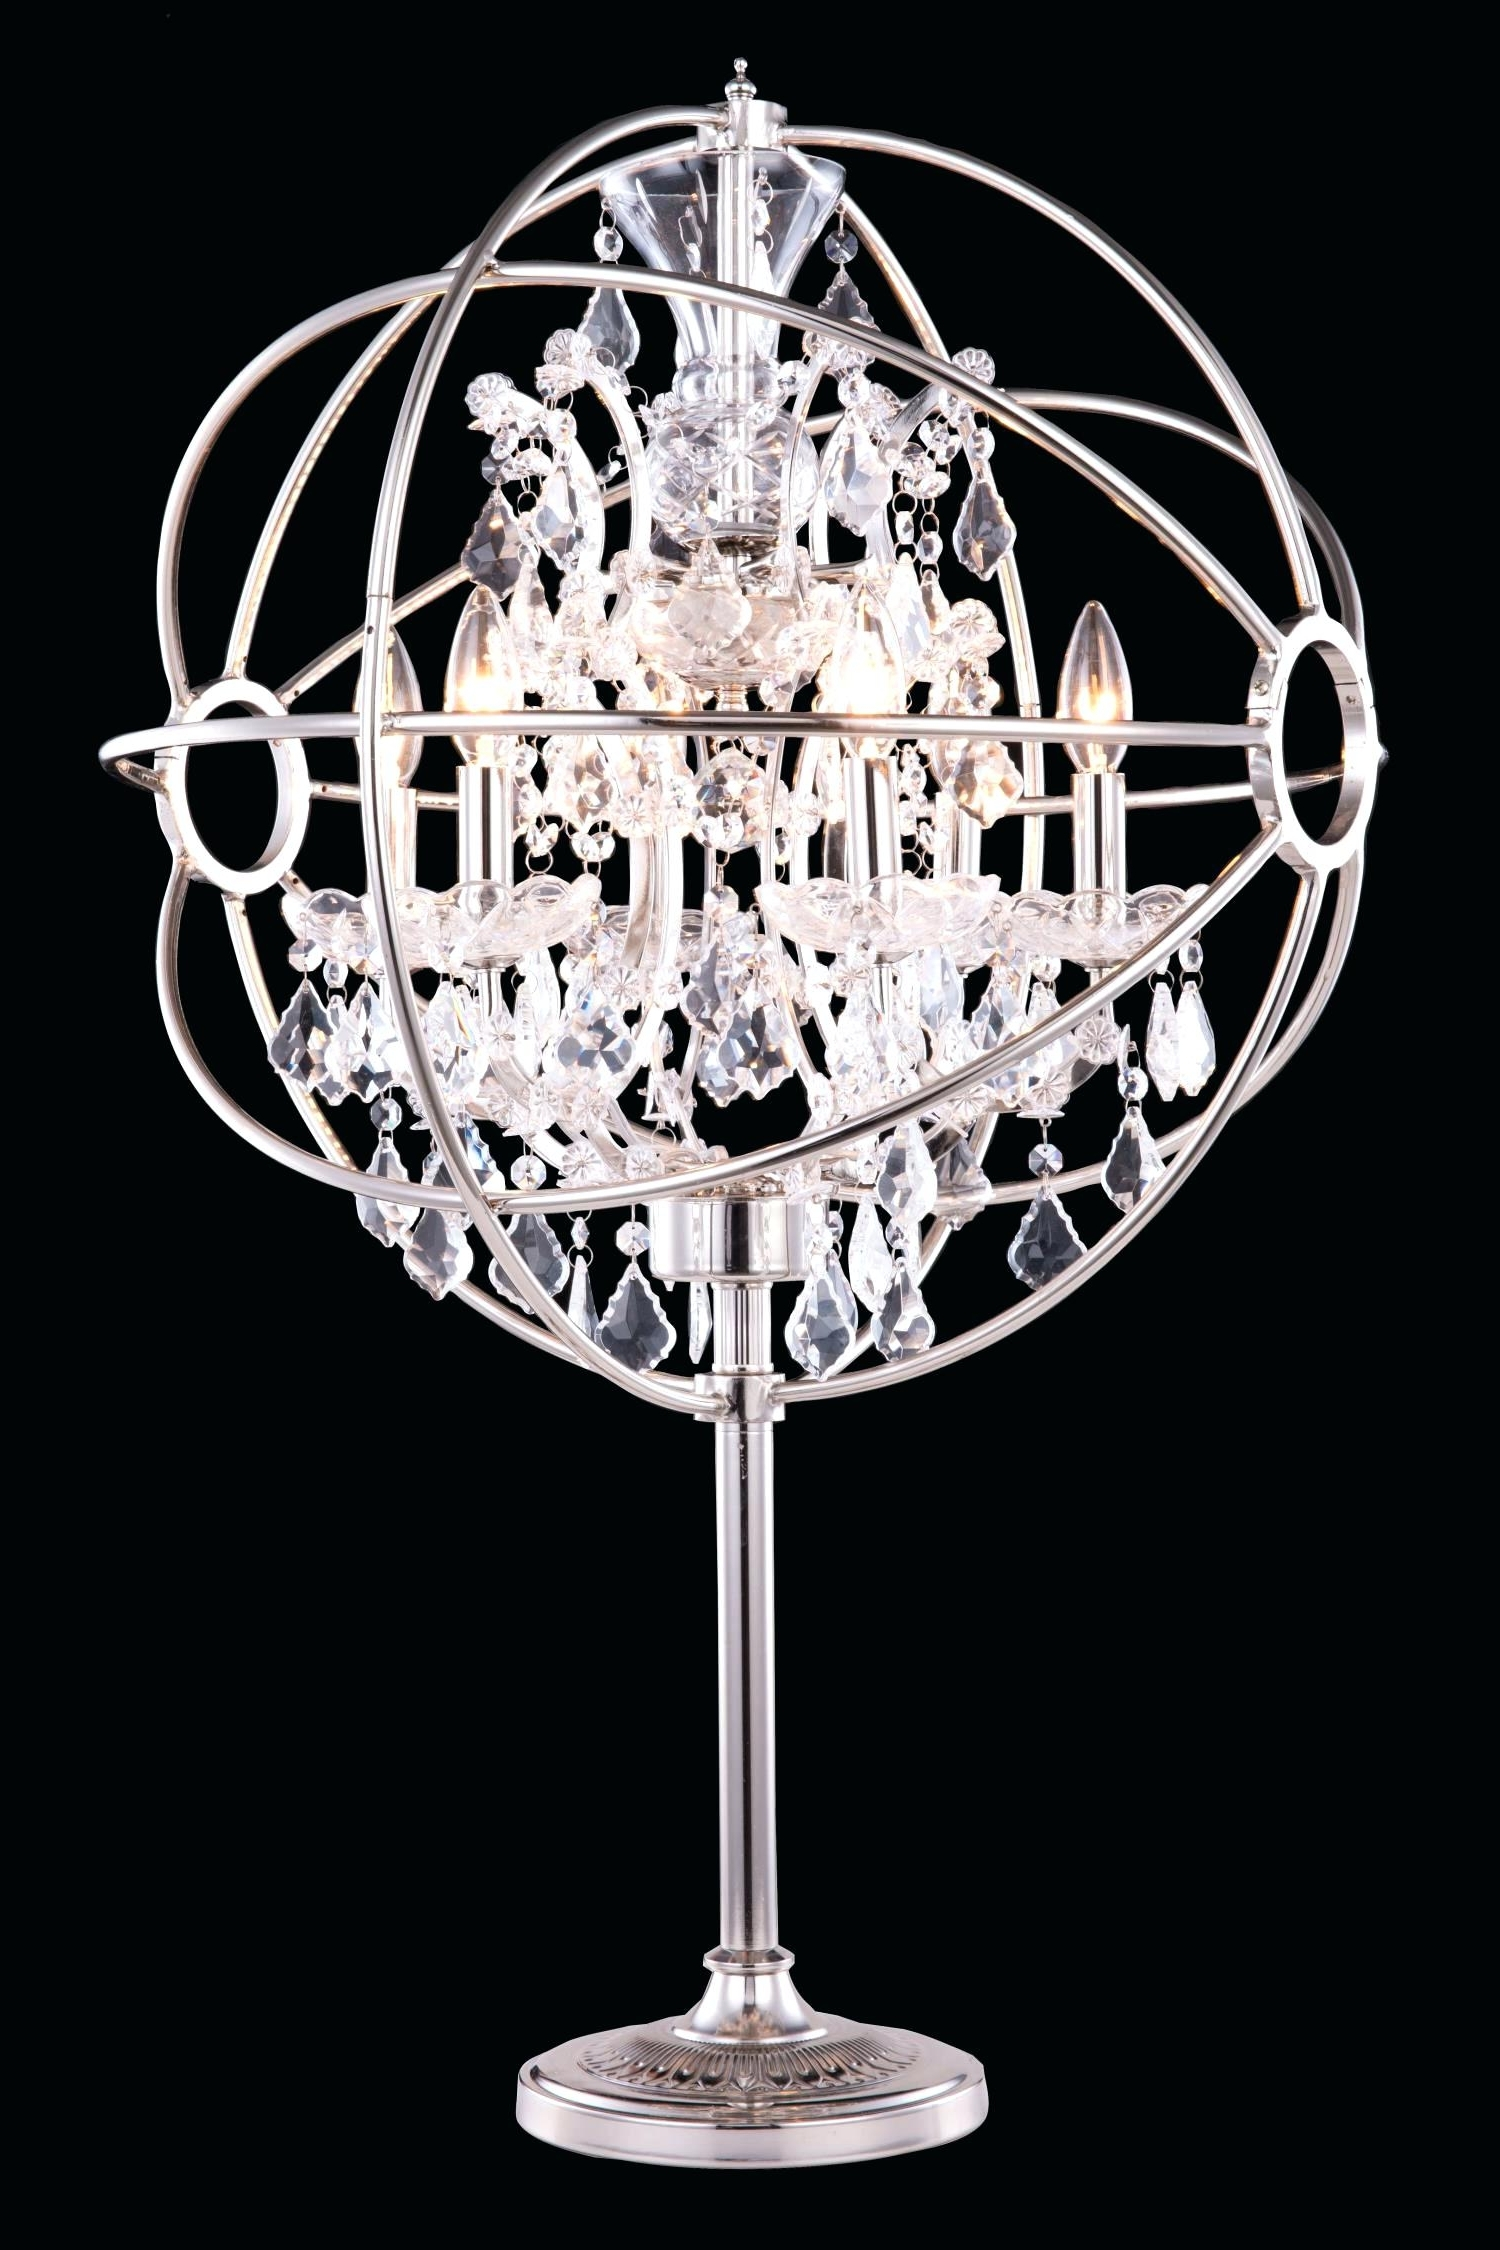 Faux Crystal Chandelier Table Lamps Intended For Preferred Black Crystal Chandelier Table Lamps – Homeinteriorideas (View 8 of 20)